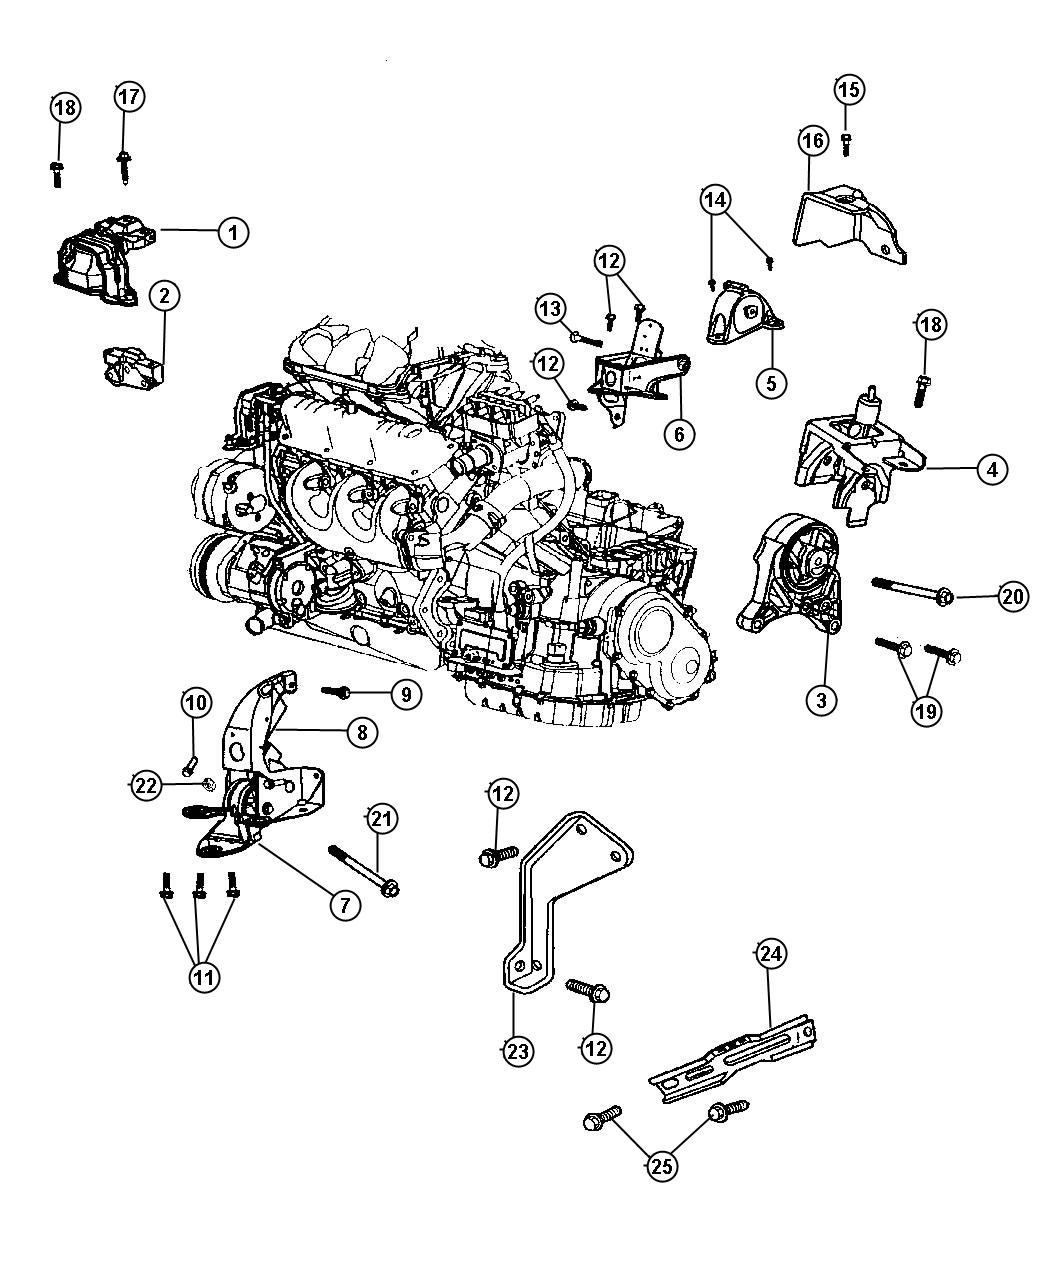 Dodge Caravan Engine Diagram Toyota FJ Cruiser Engine